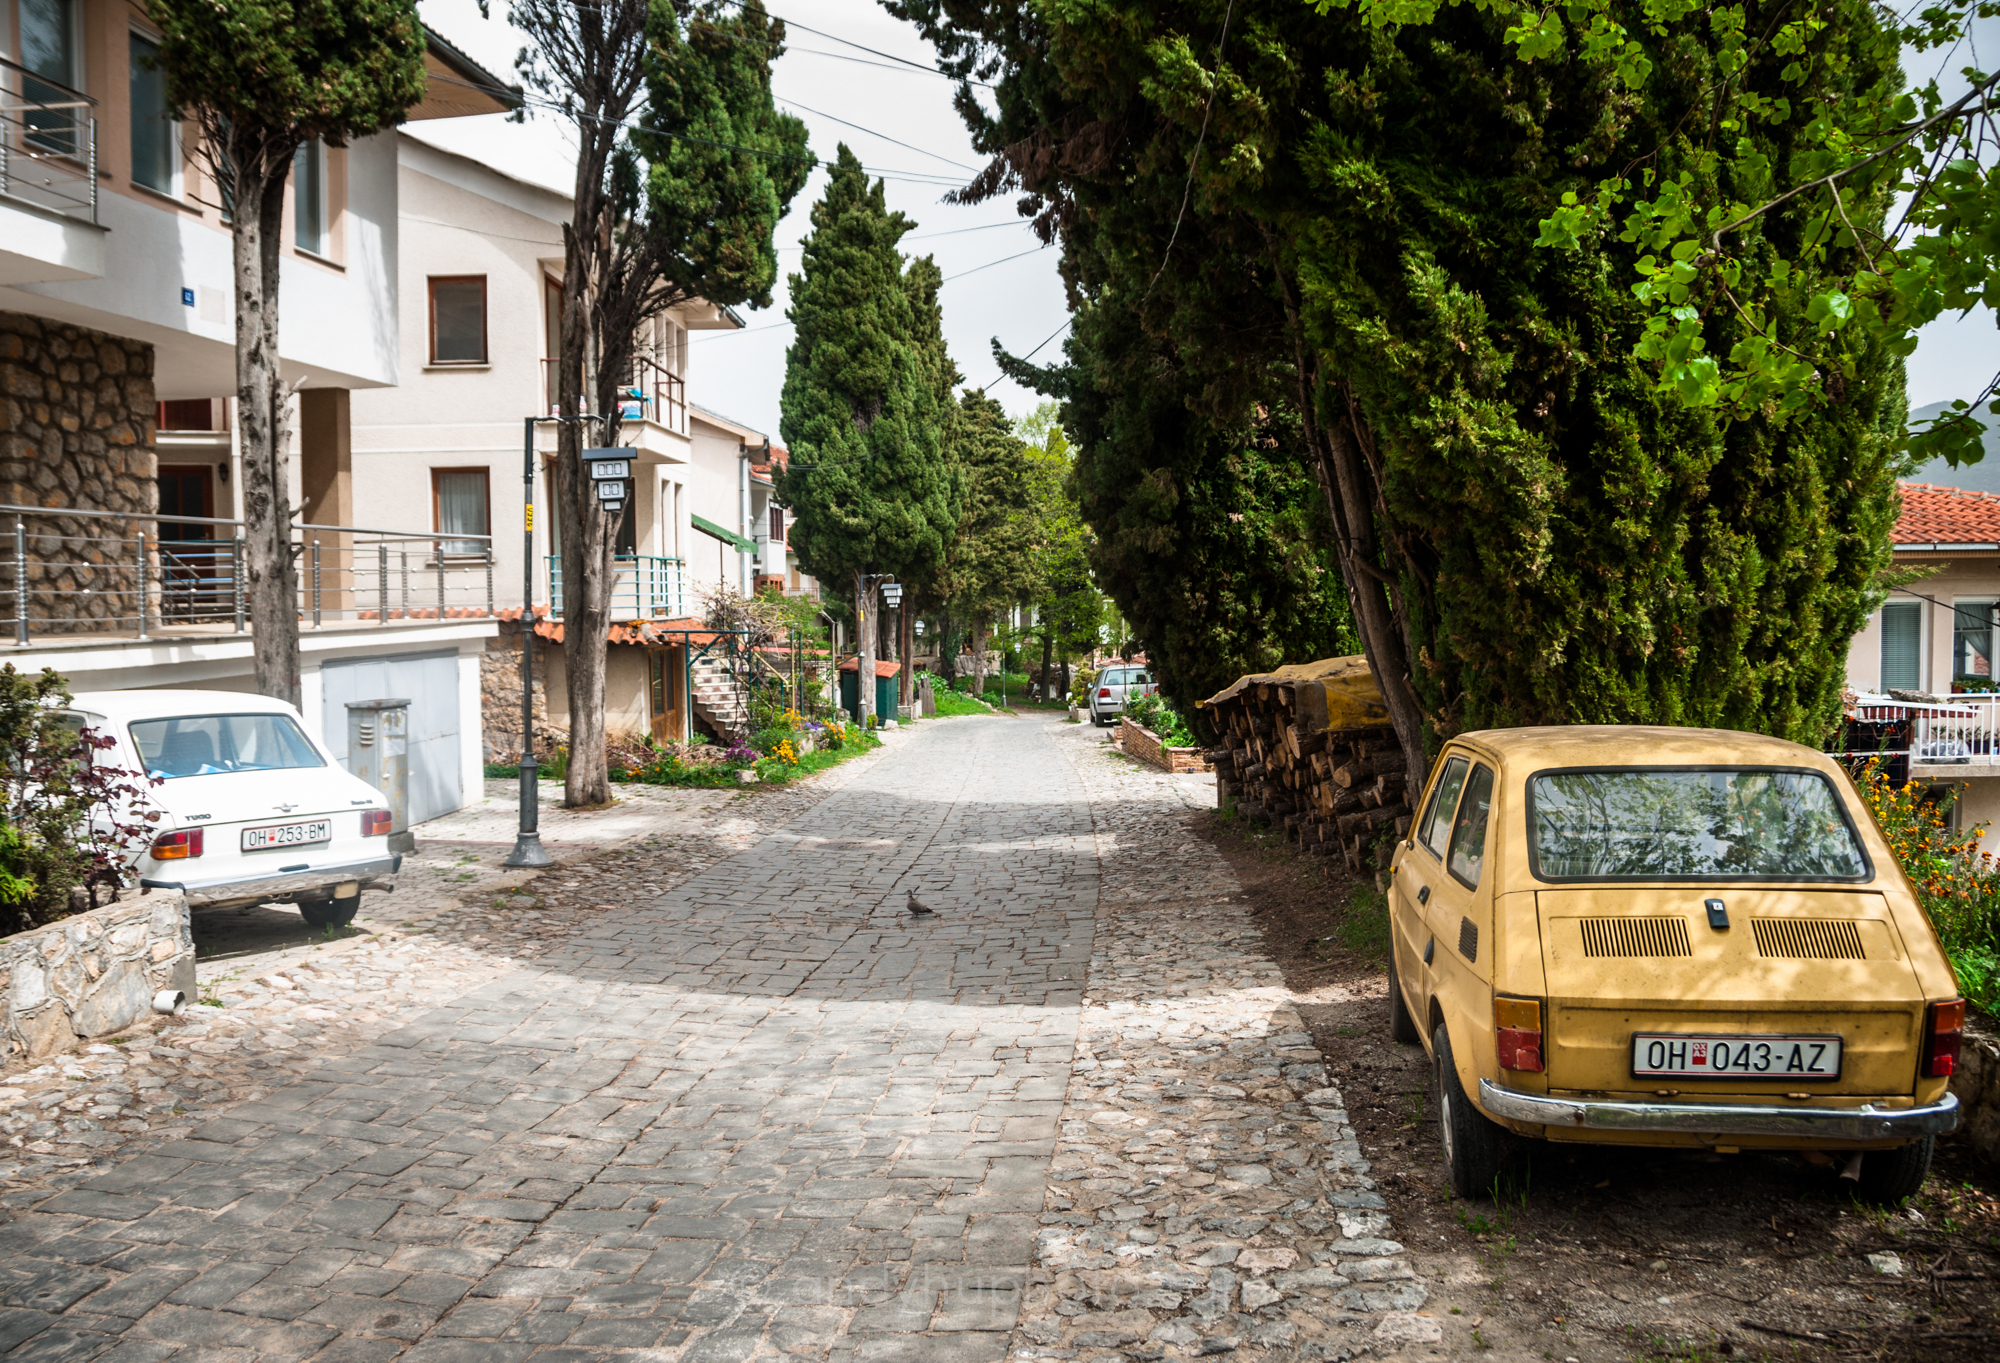 A sleepy street in Ohrid on the way to Tsar Samuel's Fortress